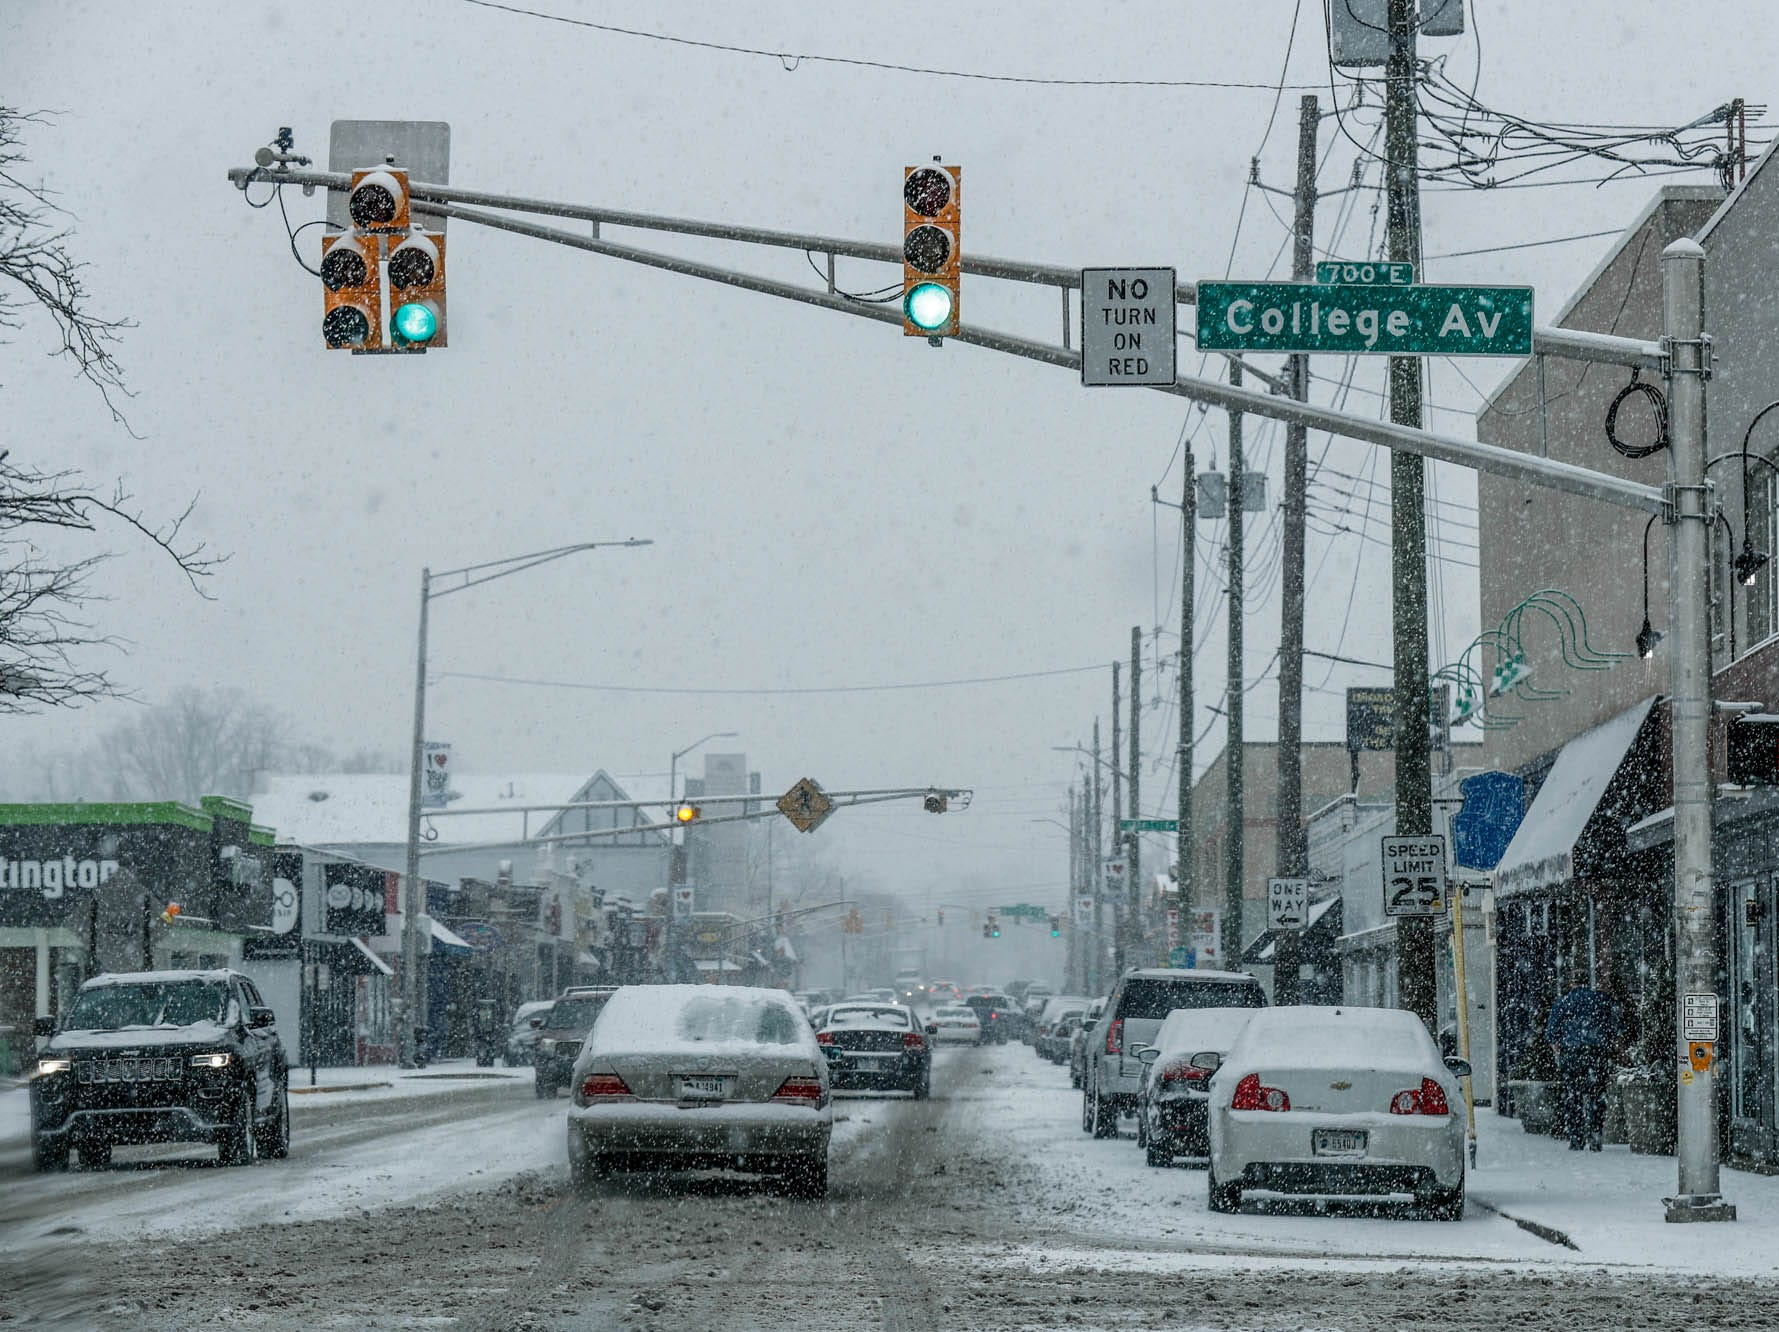 Snow falls in Broad Ripple Village in Indianapolis on Sunday, Feb. 10, 2019.